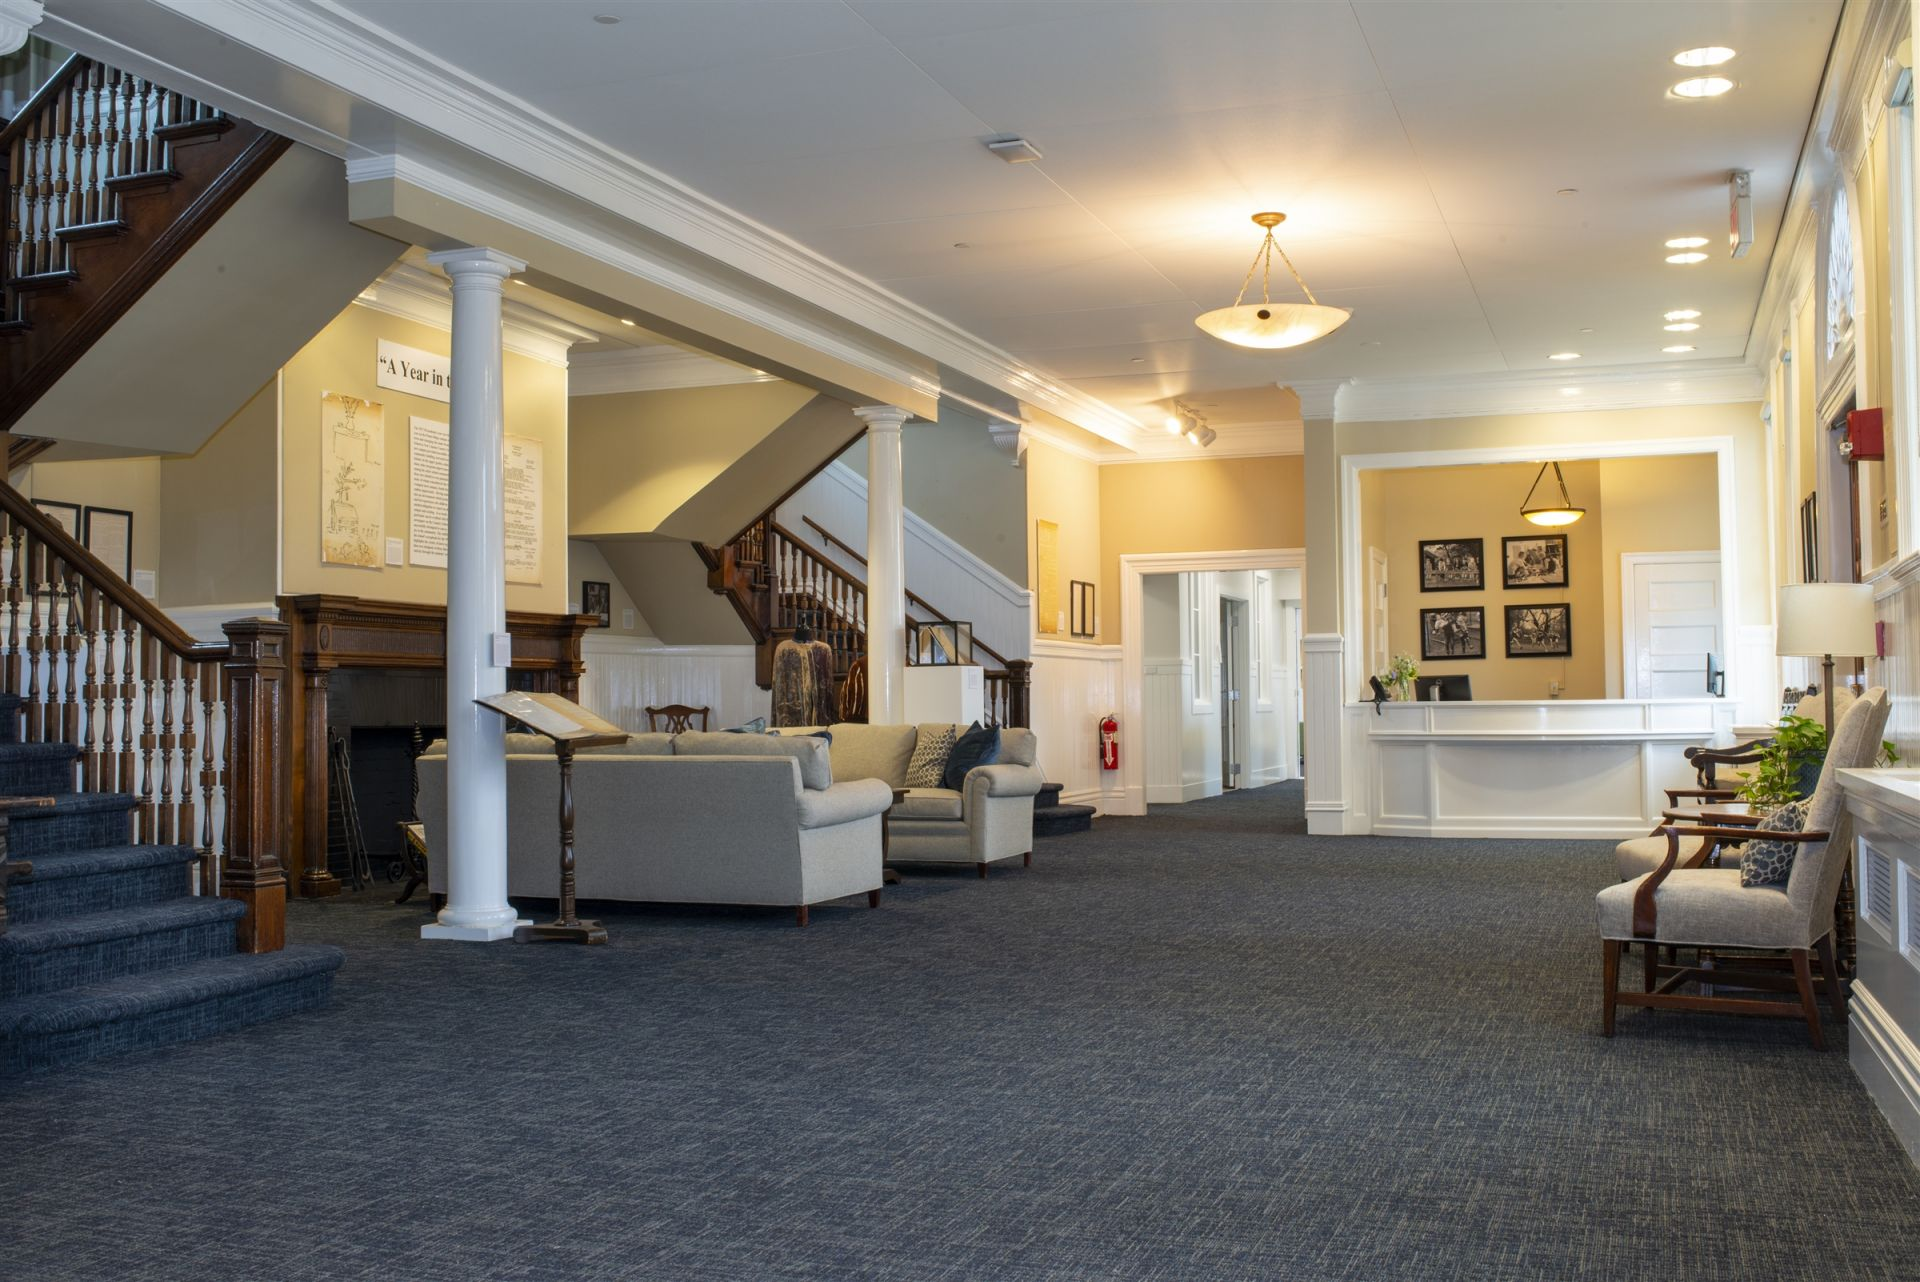 Grace House Lobby: The main lobby welcomes visitors, hosts student art displays, parent gatherings, and periodic historical exhibits from the school's archives.